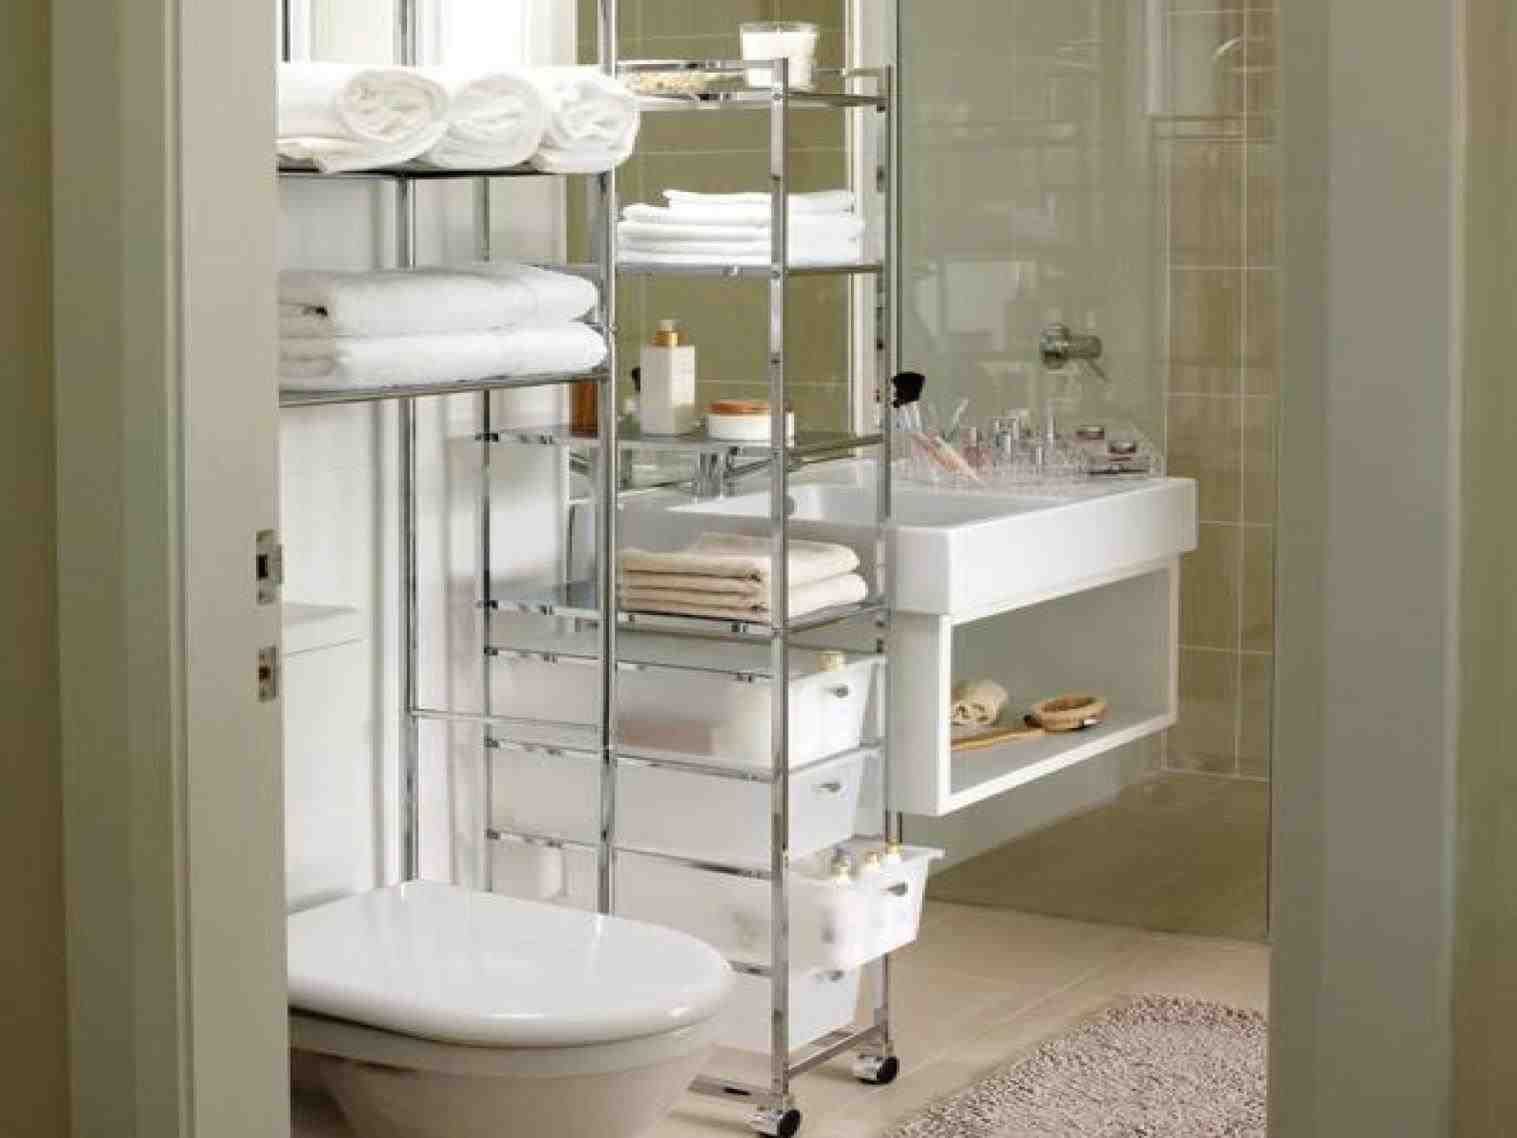 New Diy Bathroom Storage Tower At 16 Info